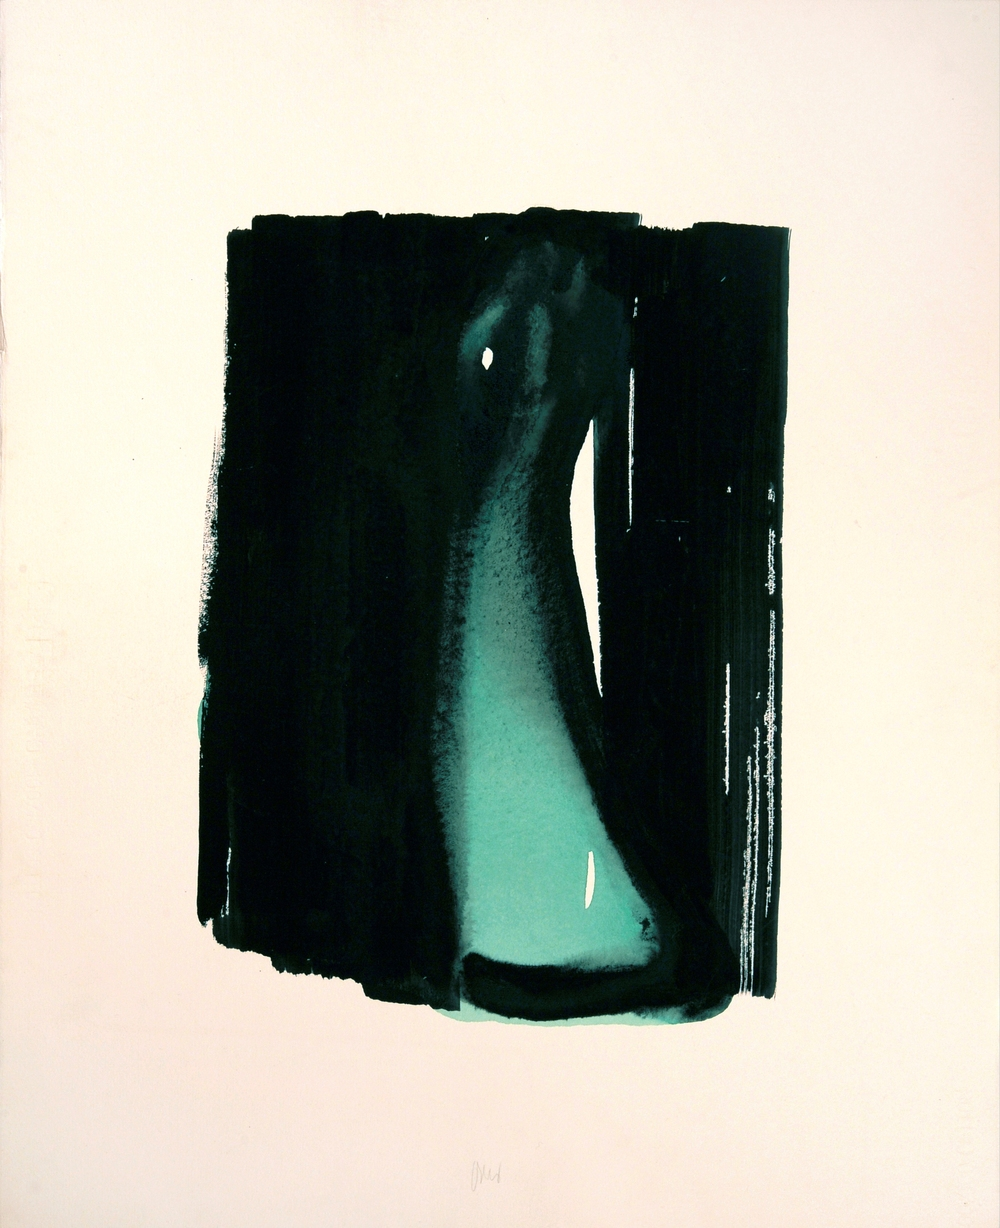 "senza titolo, dalla serie ""13 carte Fabriano"", 1995, acrilico su carta Fabriano, cm 76 x 57  untitled, from the series ""13 carte Fabriano"", 1995, acrylic on Fabriano paper, cm 76 x 57"